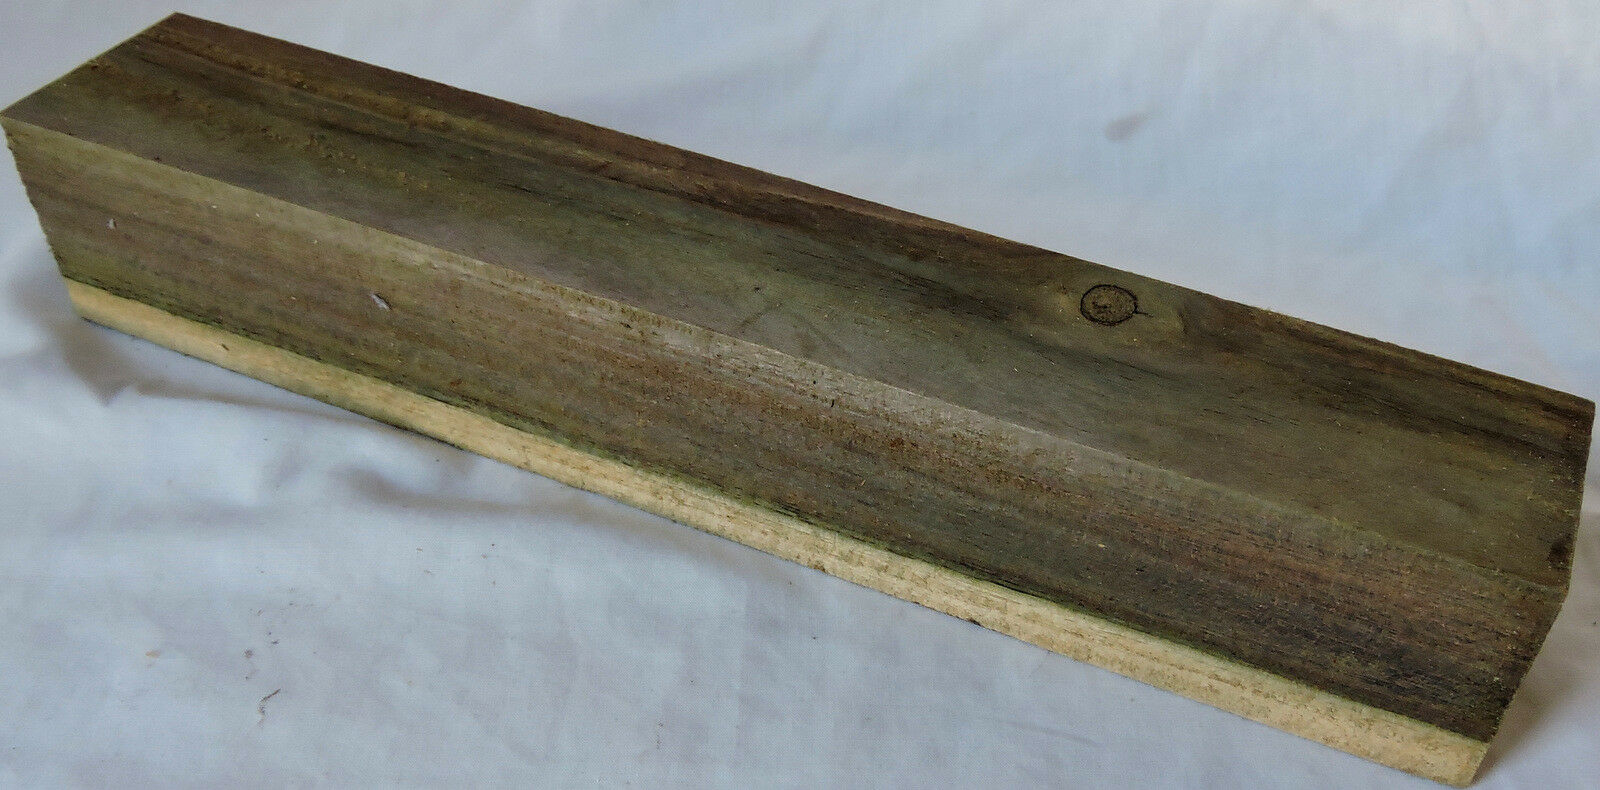 bluee Mahoe Hardwood 2x2x12 Turkey Box Calls bluee Mahoe Pool Cues Mahoe Lumber